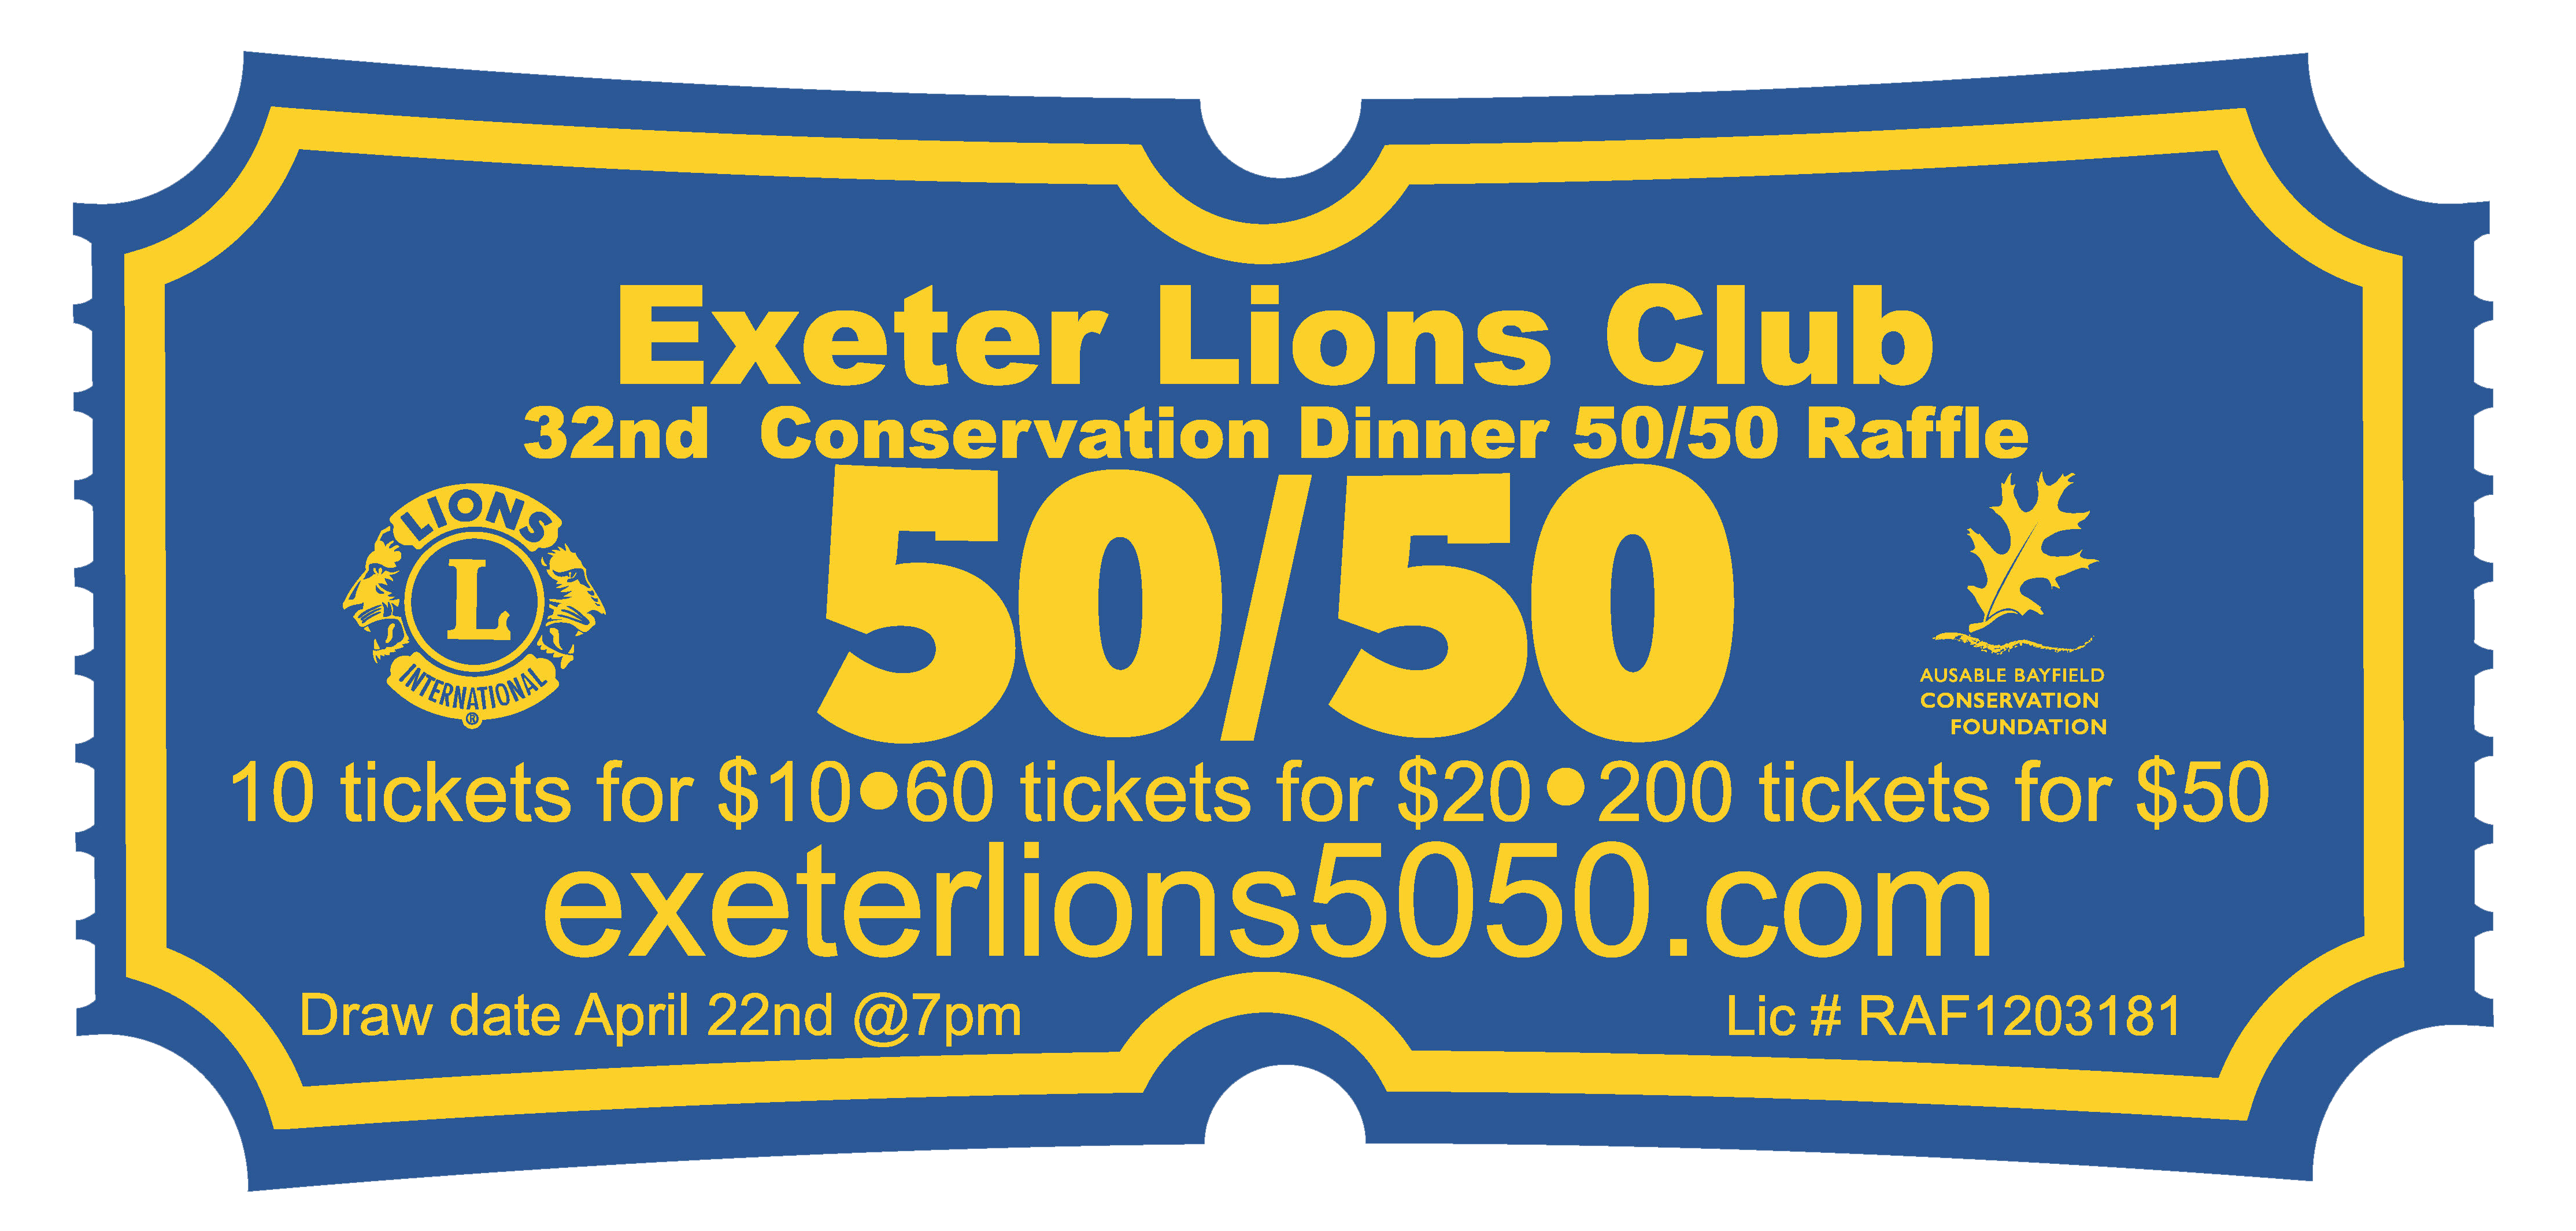 Support your community, get your 50-50 Raffle Draw ticket online.